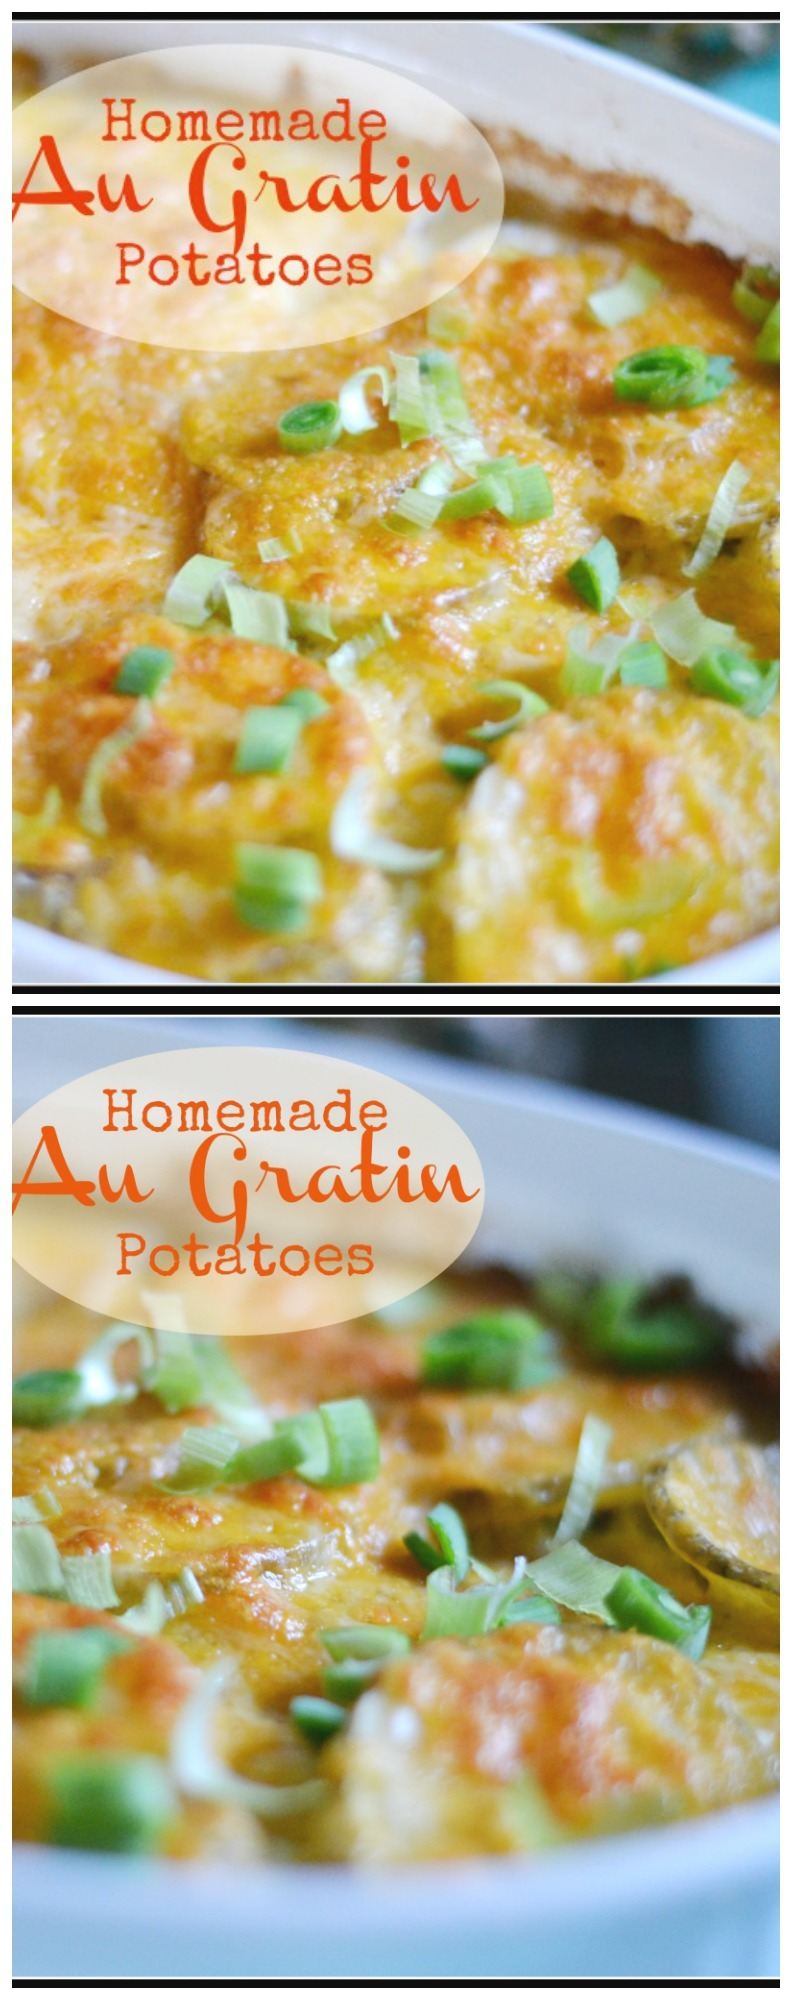 Homemade Au Gratin Potatoes! This side dish is so easy, delicious and cheap to make! Great for any holiday or for company!